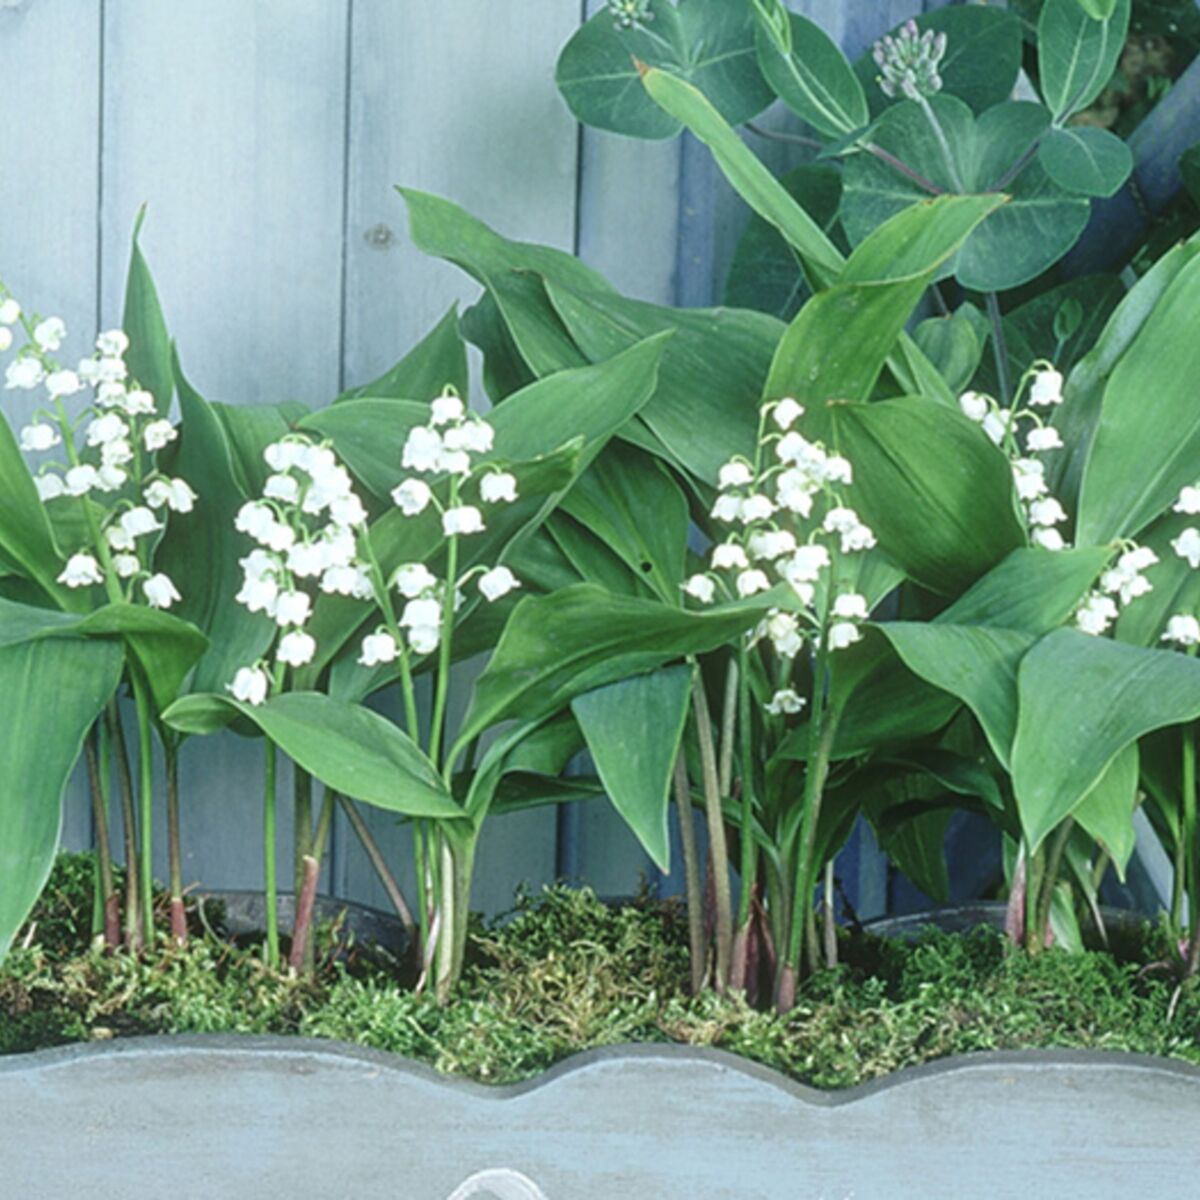 Comment Planter Du Muguet comment replanter du muguet en pot ? : femme actuelle le mag